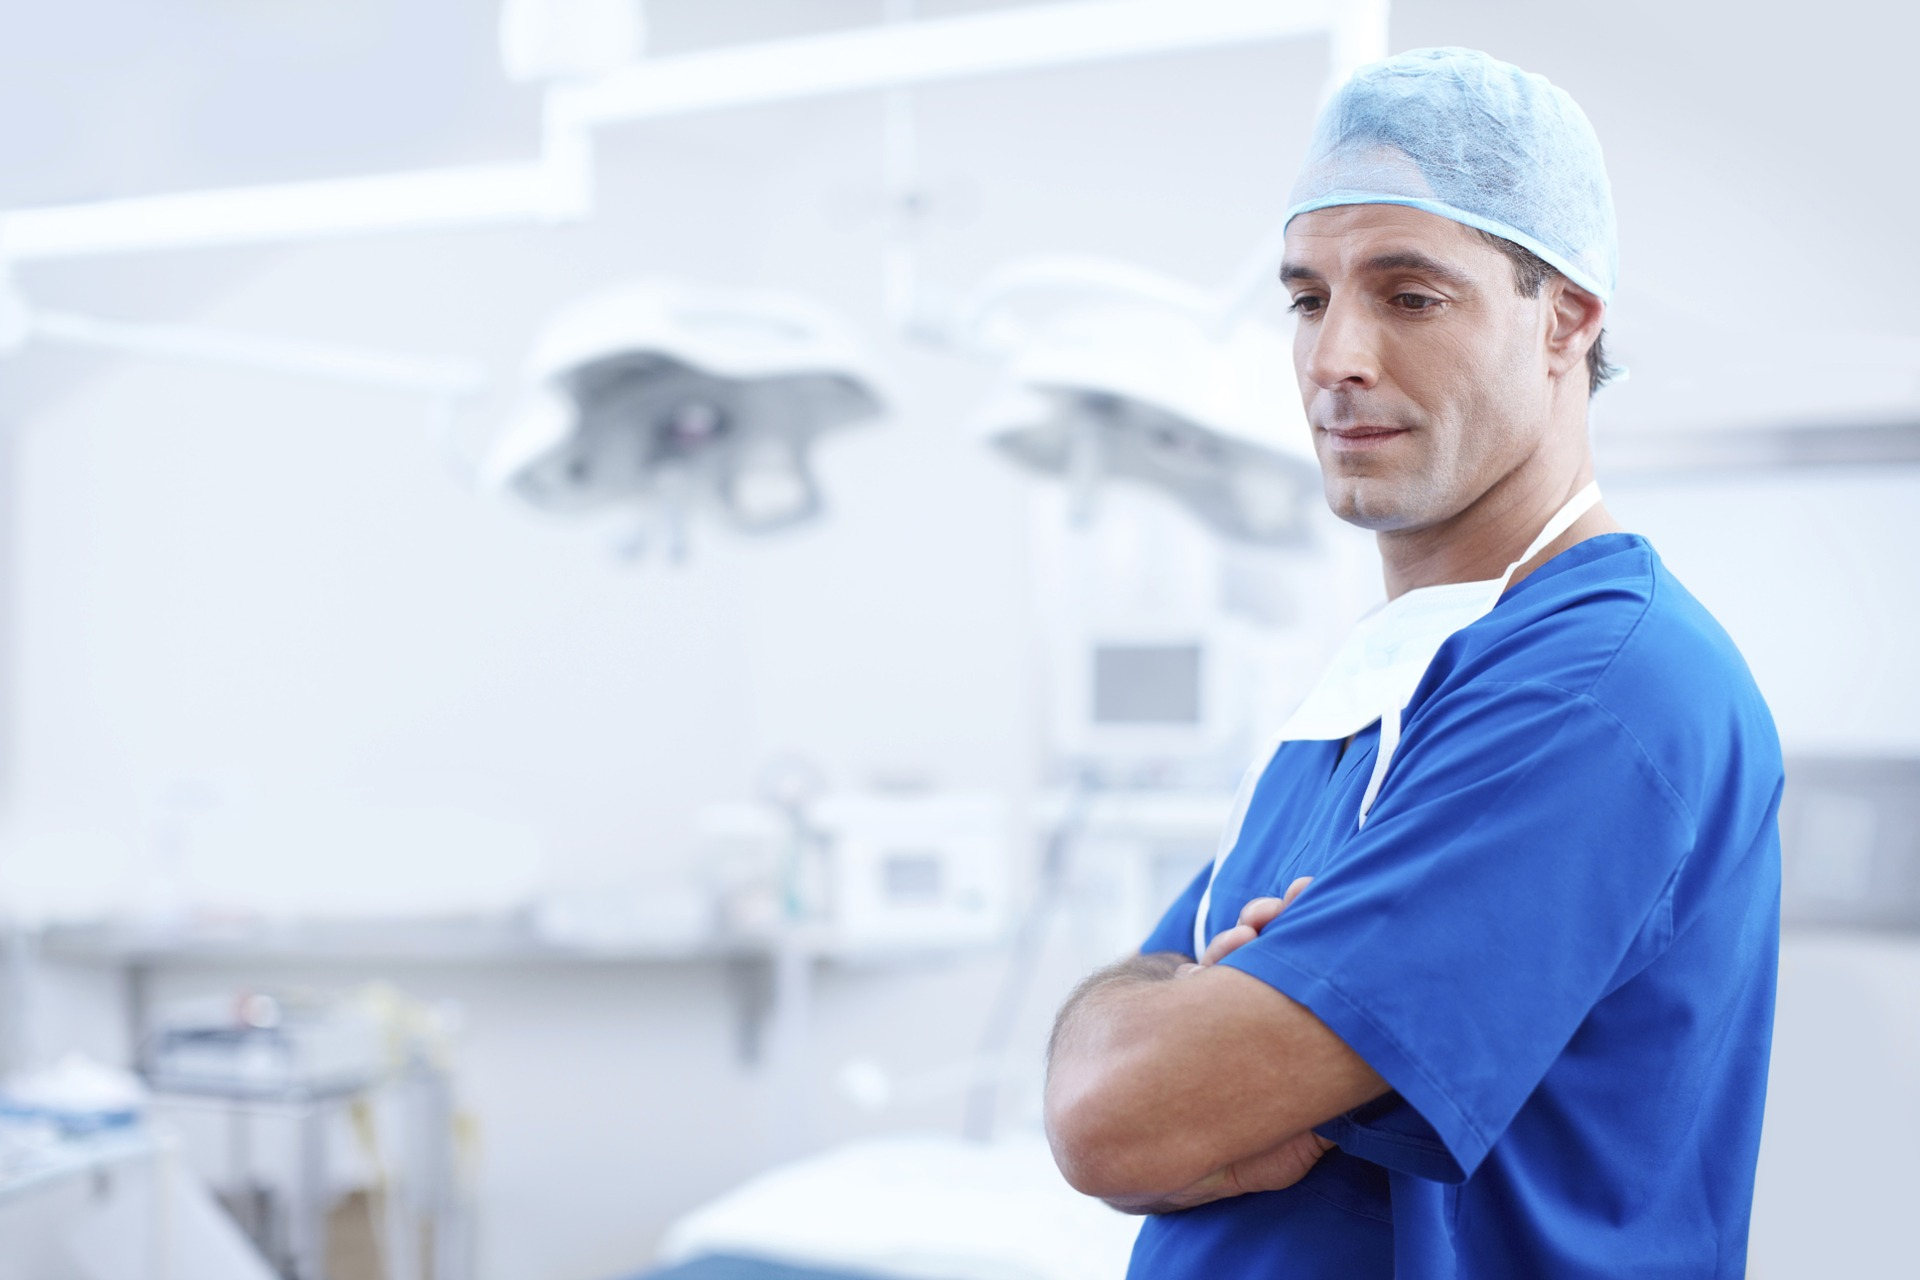 How Do Healthcare Provider Organizations Benefit from Locum Tenens?